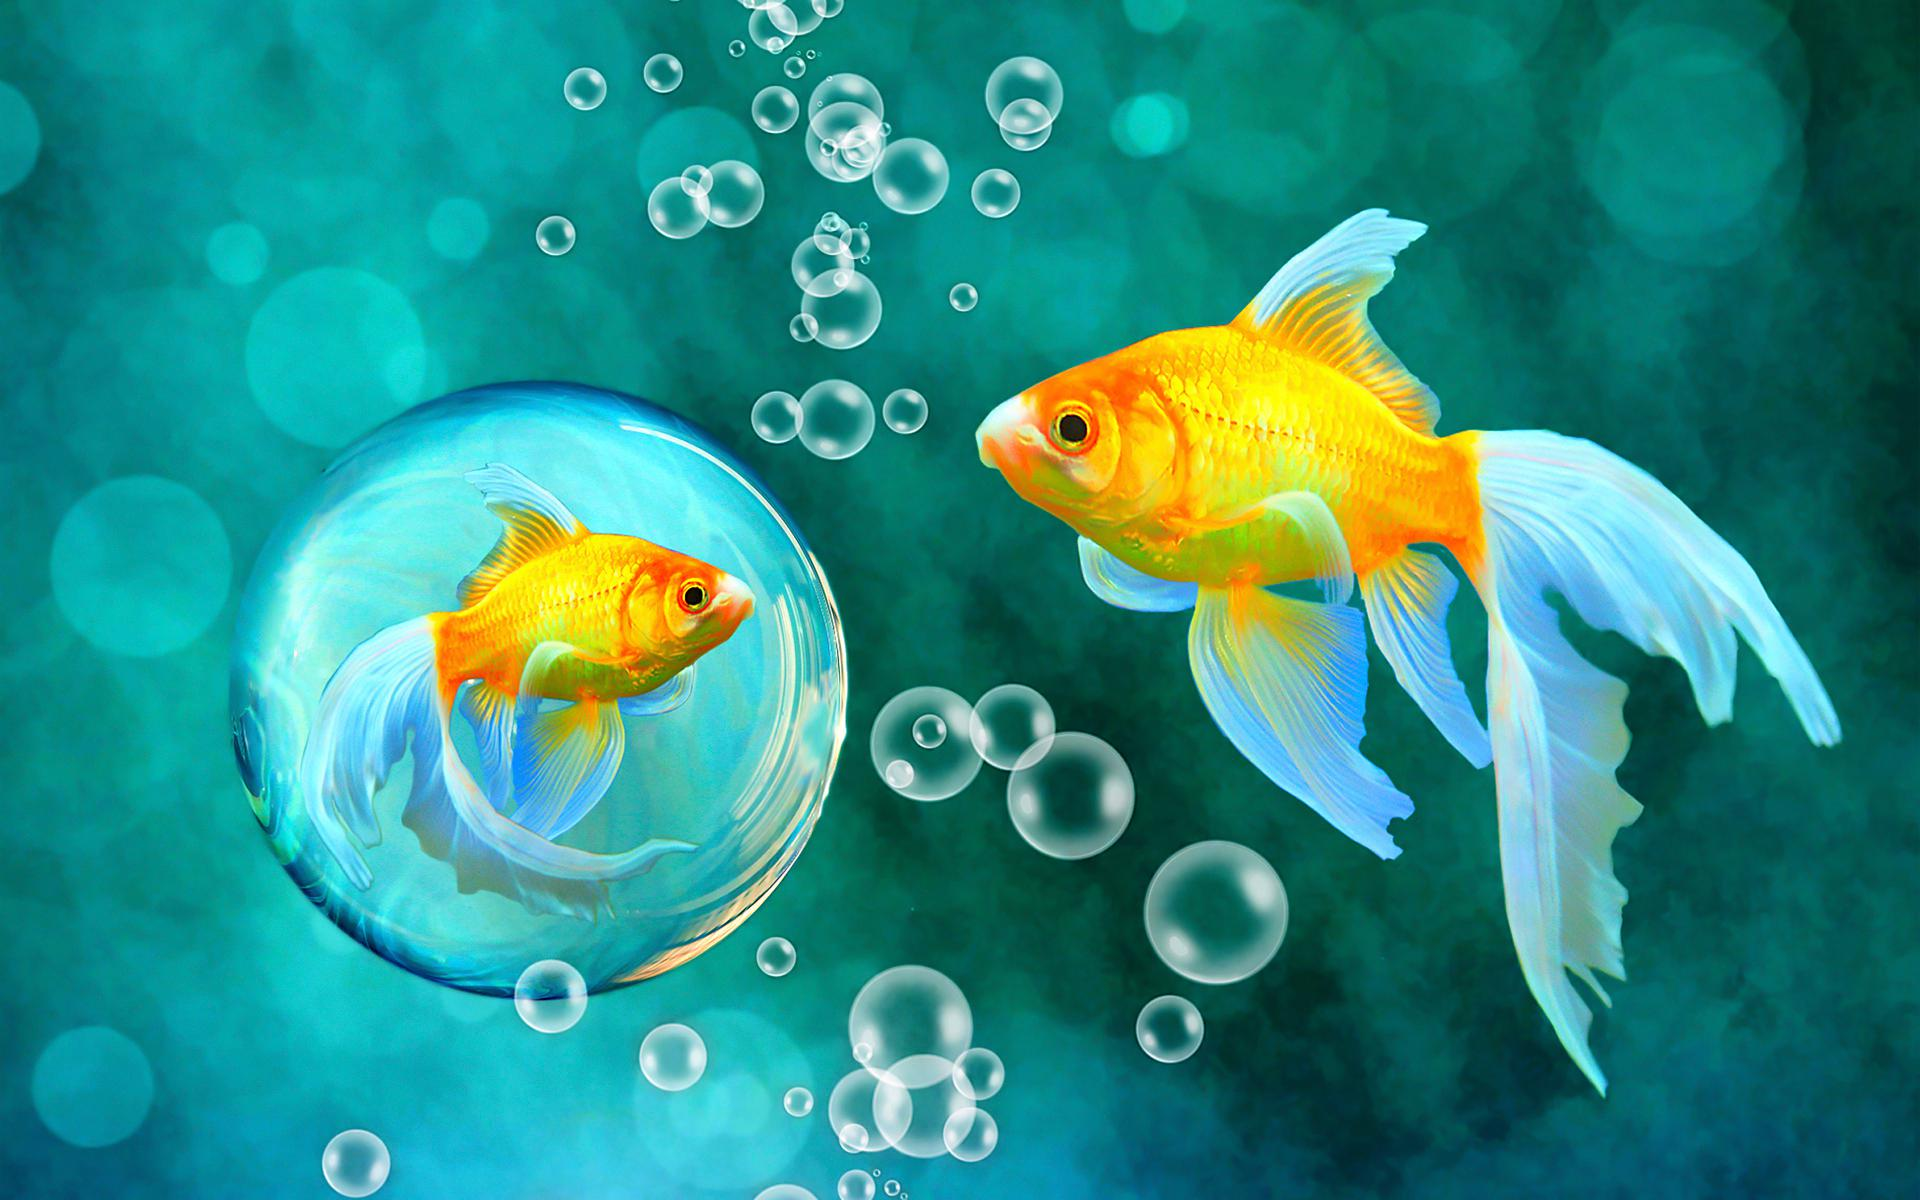 Good Night 3d Moving Wallpaper Hd Bubbles Goldfish Blue Bokeh Sea Fish Fishes Underwater